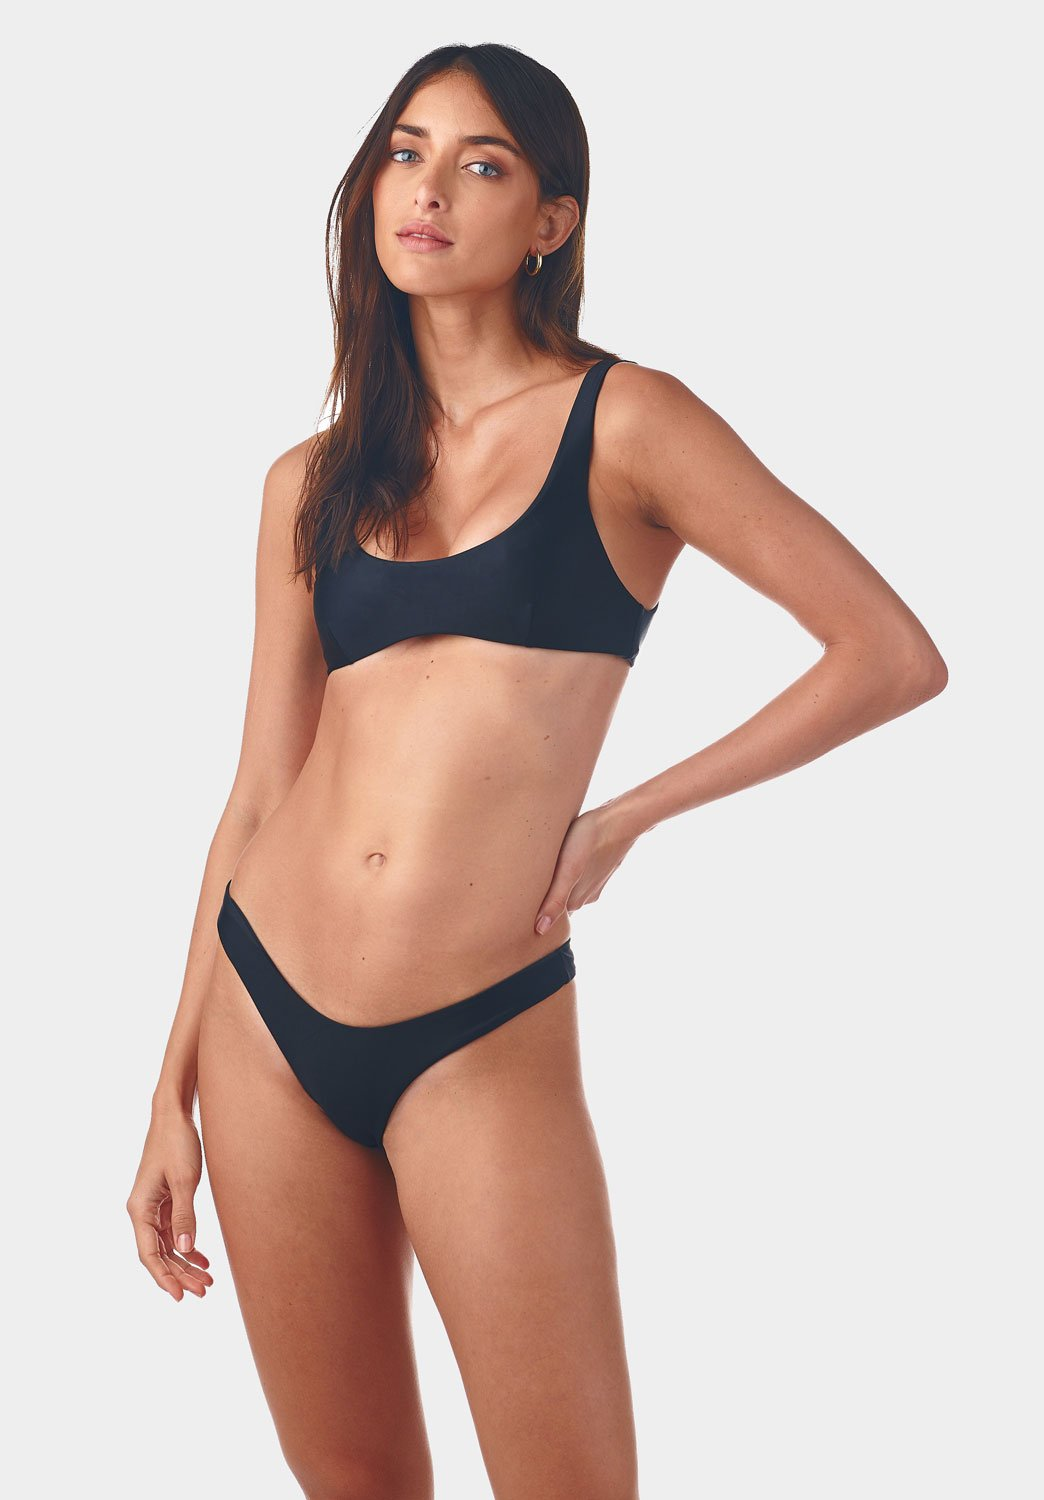 INC Swim - Low Back Crop x High Cut Pant Bikini - Luxe Cartel